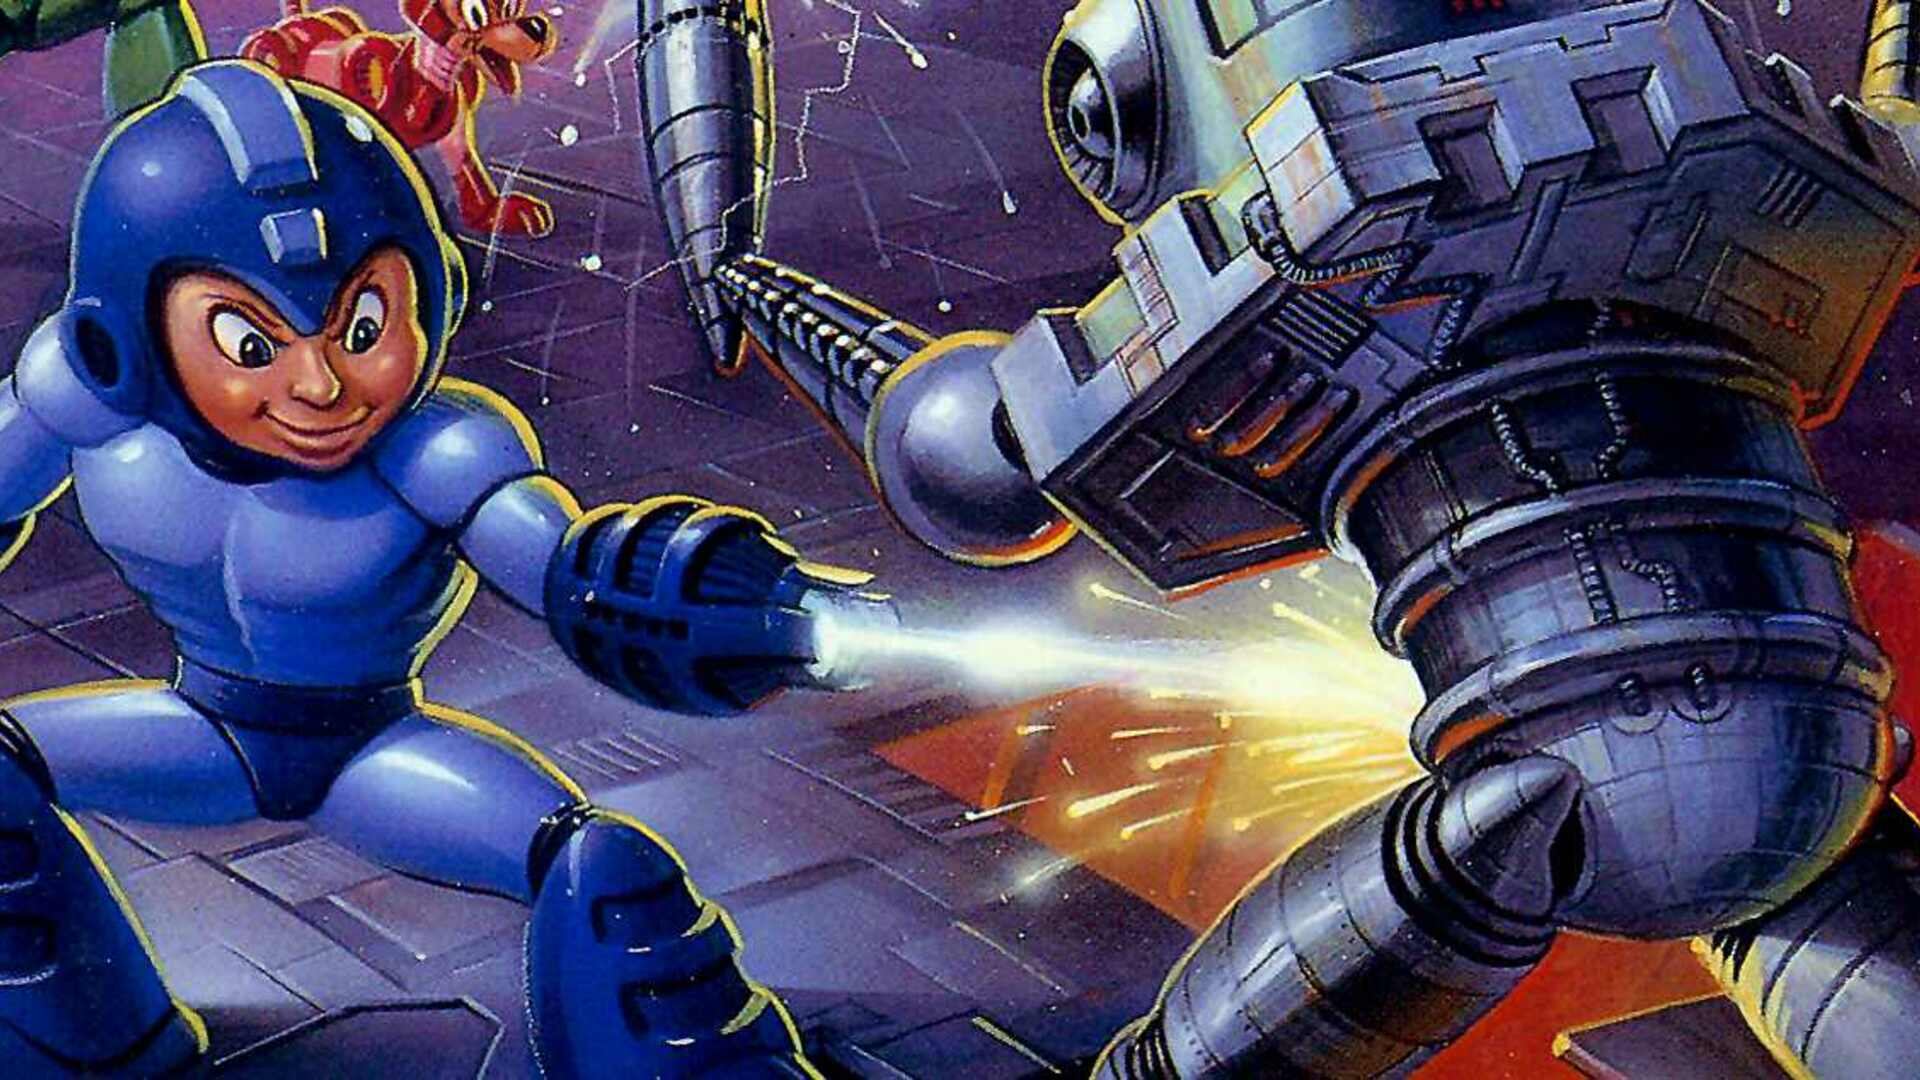 I Had a Childhood Crush on Mega Man's Mysterious Robot Brother